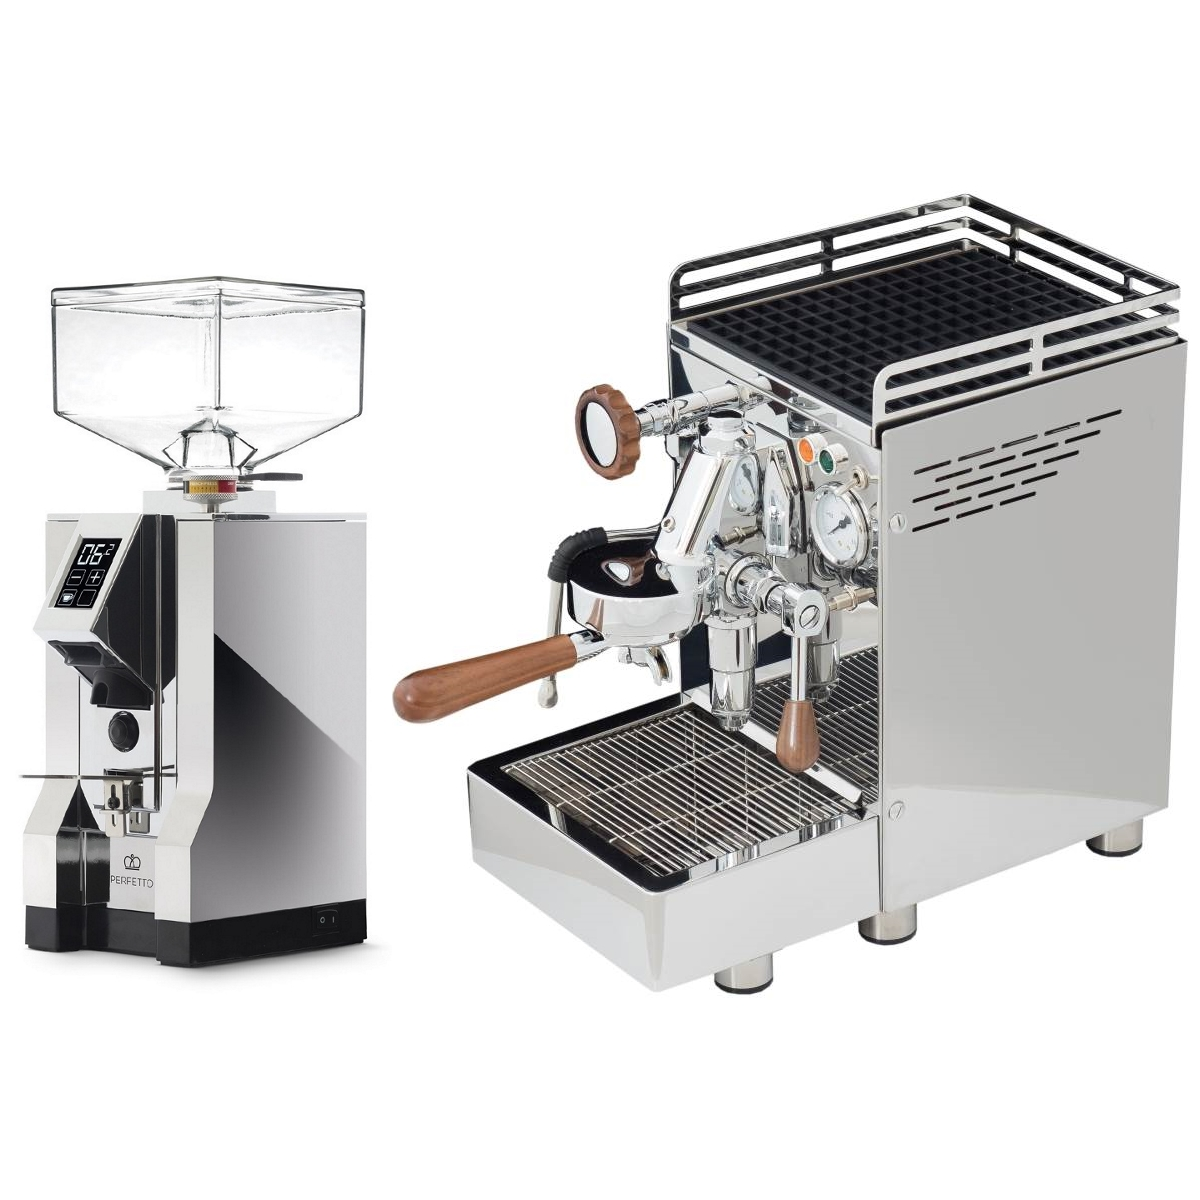 Coffee machine 969.coffee Elba2 Lux + Coffee grinder Eureka Mignon Specialita' 16CR - Chrome